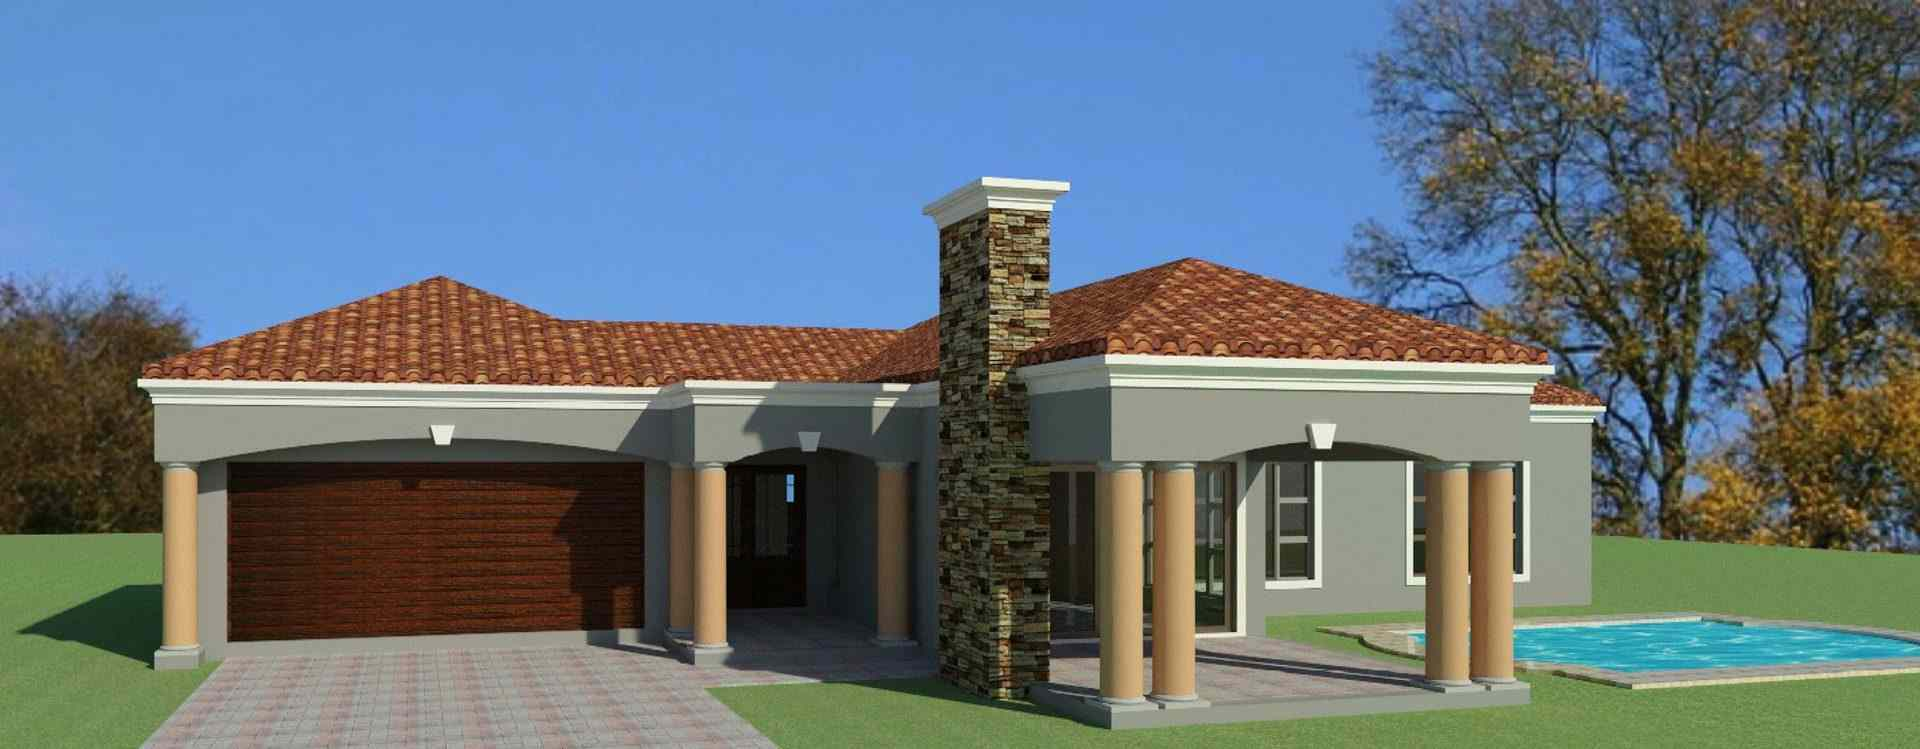 3 bedroom house plan design in south africa single storey house plan design tuscan